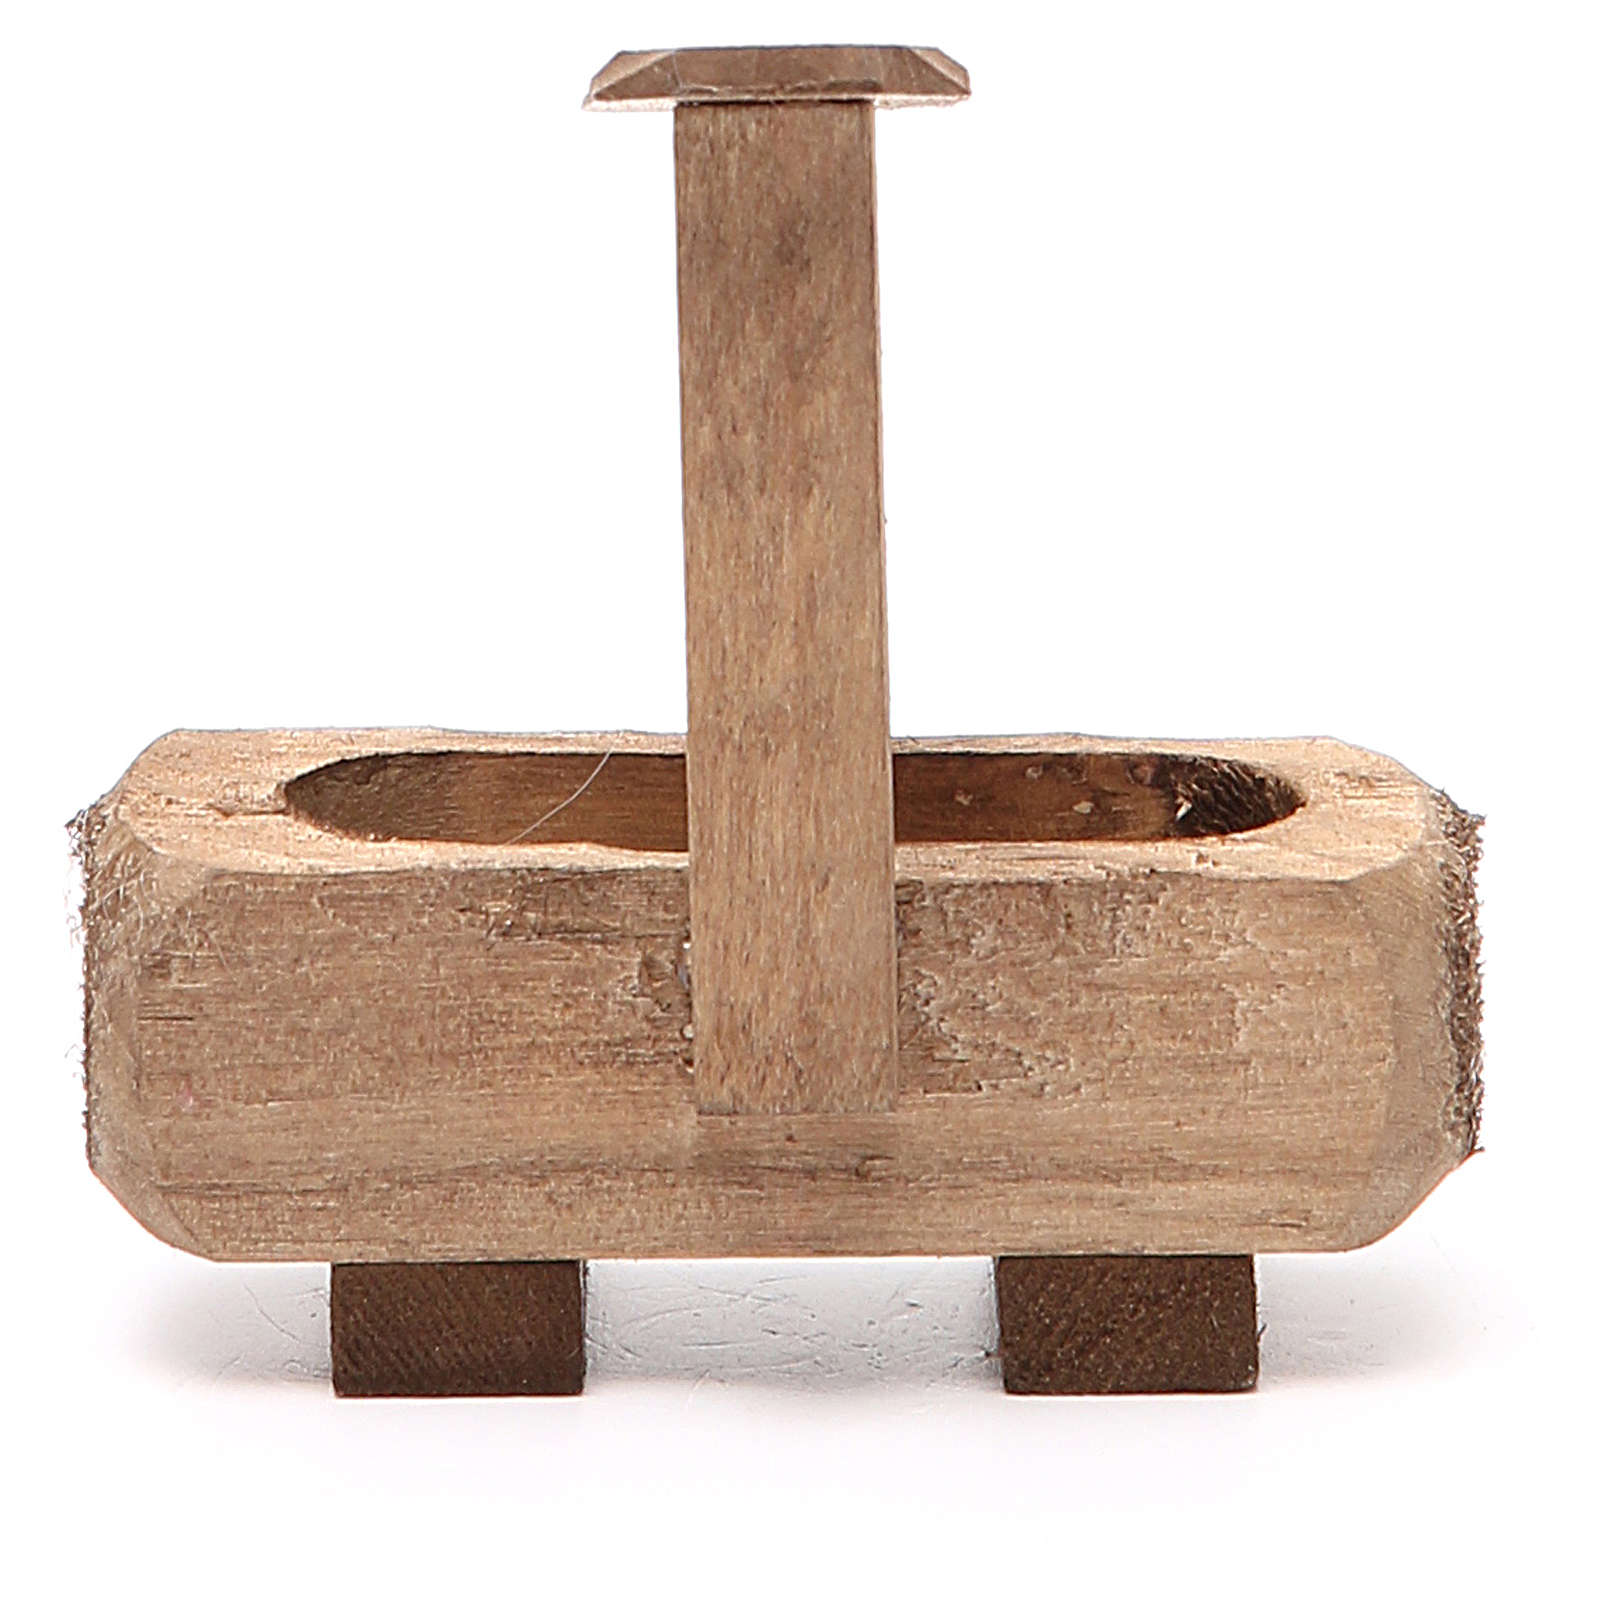 Small Fountain for nativity dark wood 8x5x8cm 4